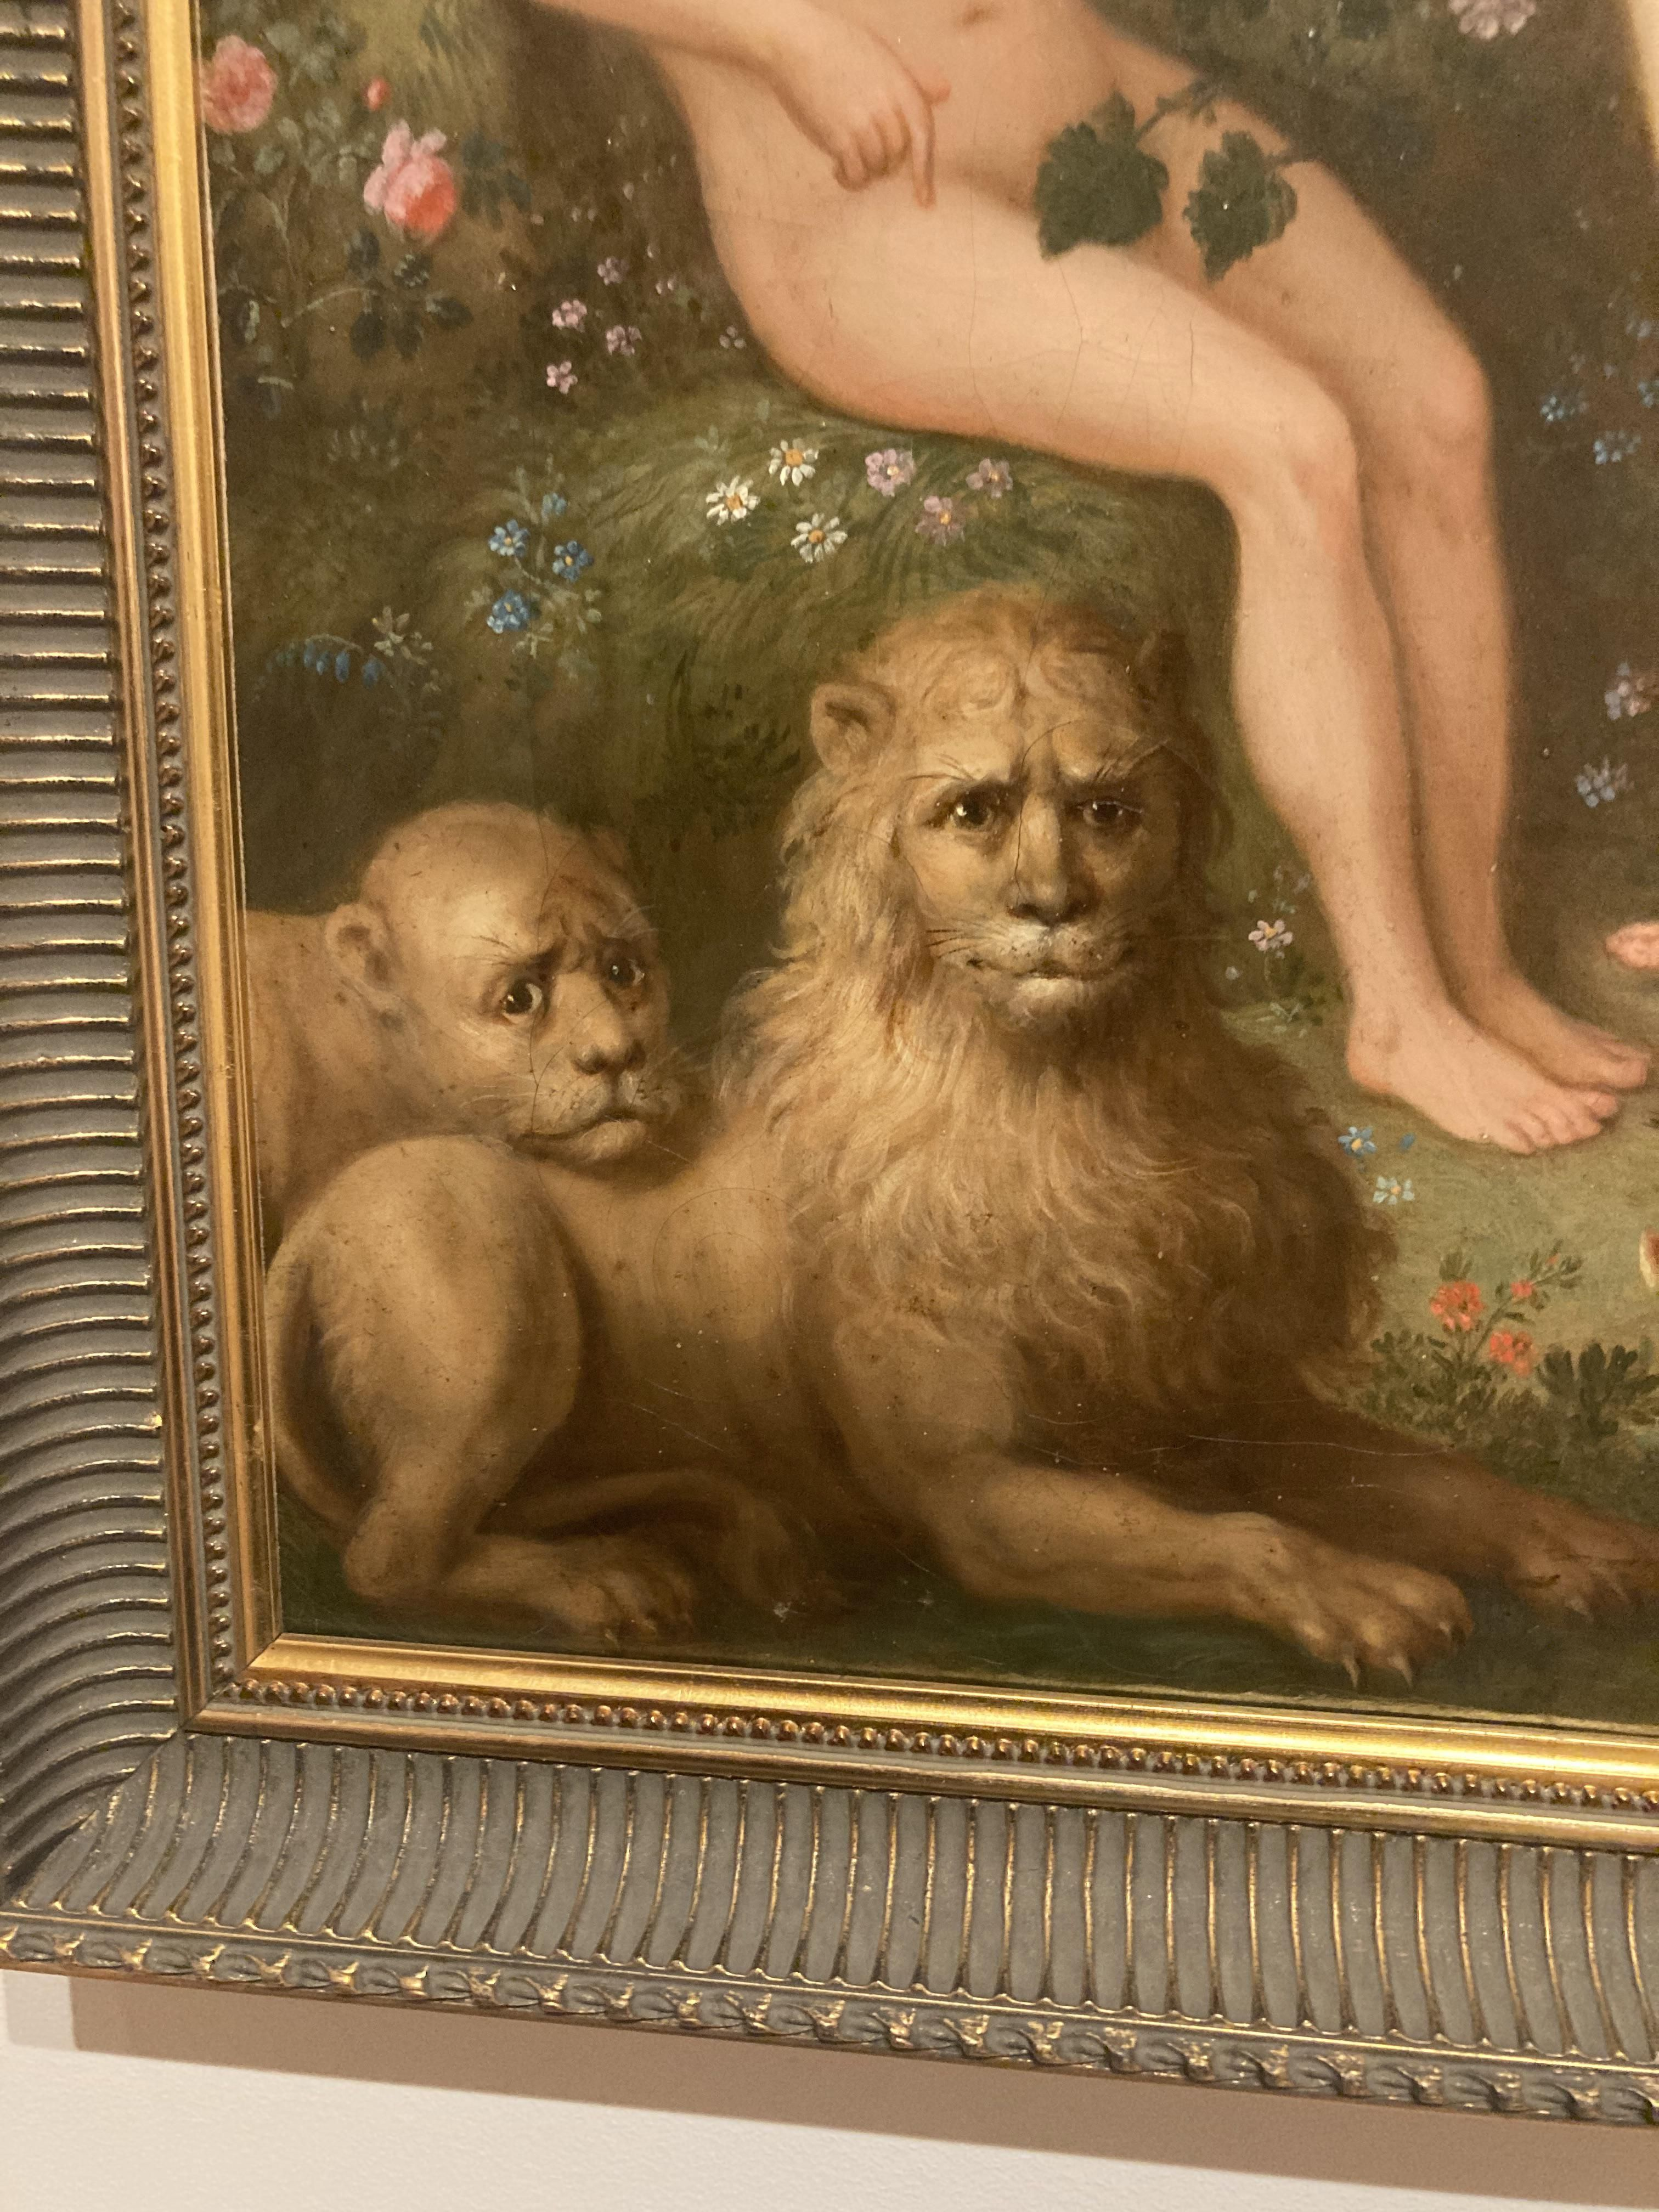 These two lions from todays gallery visit